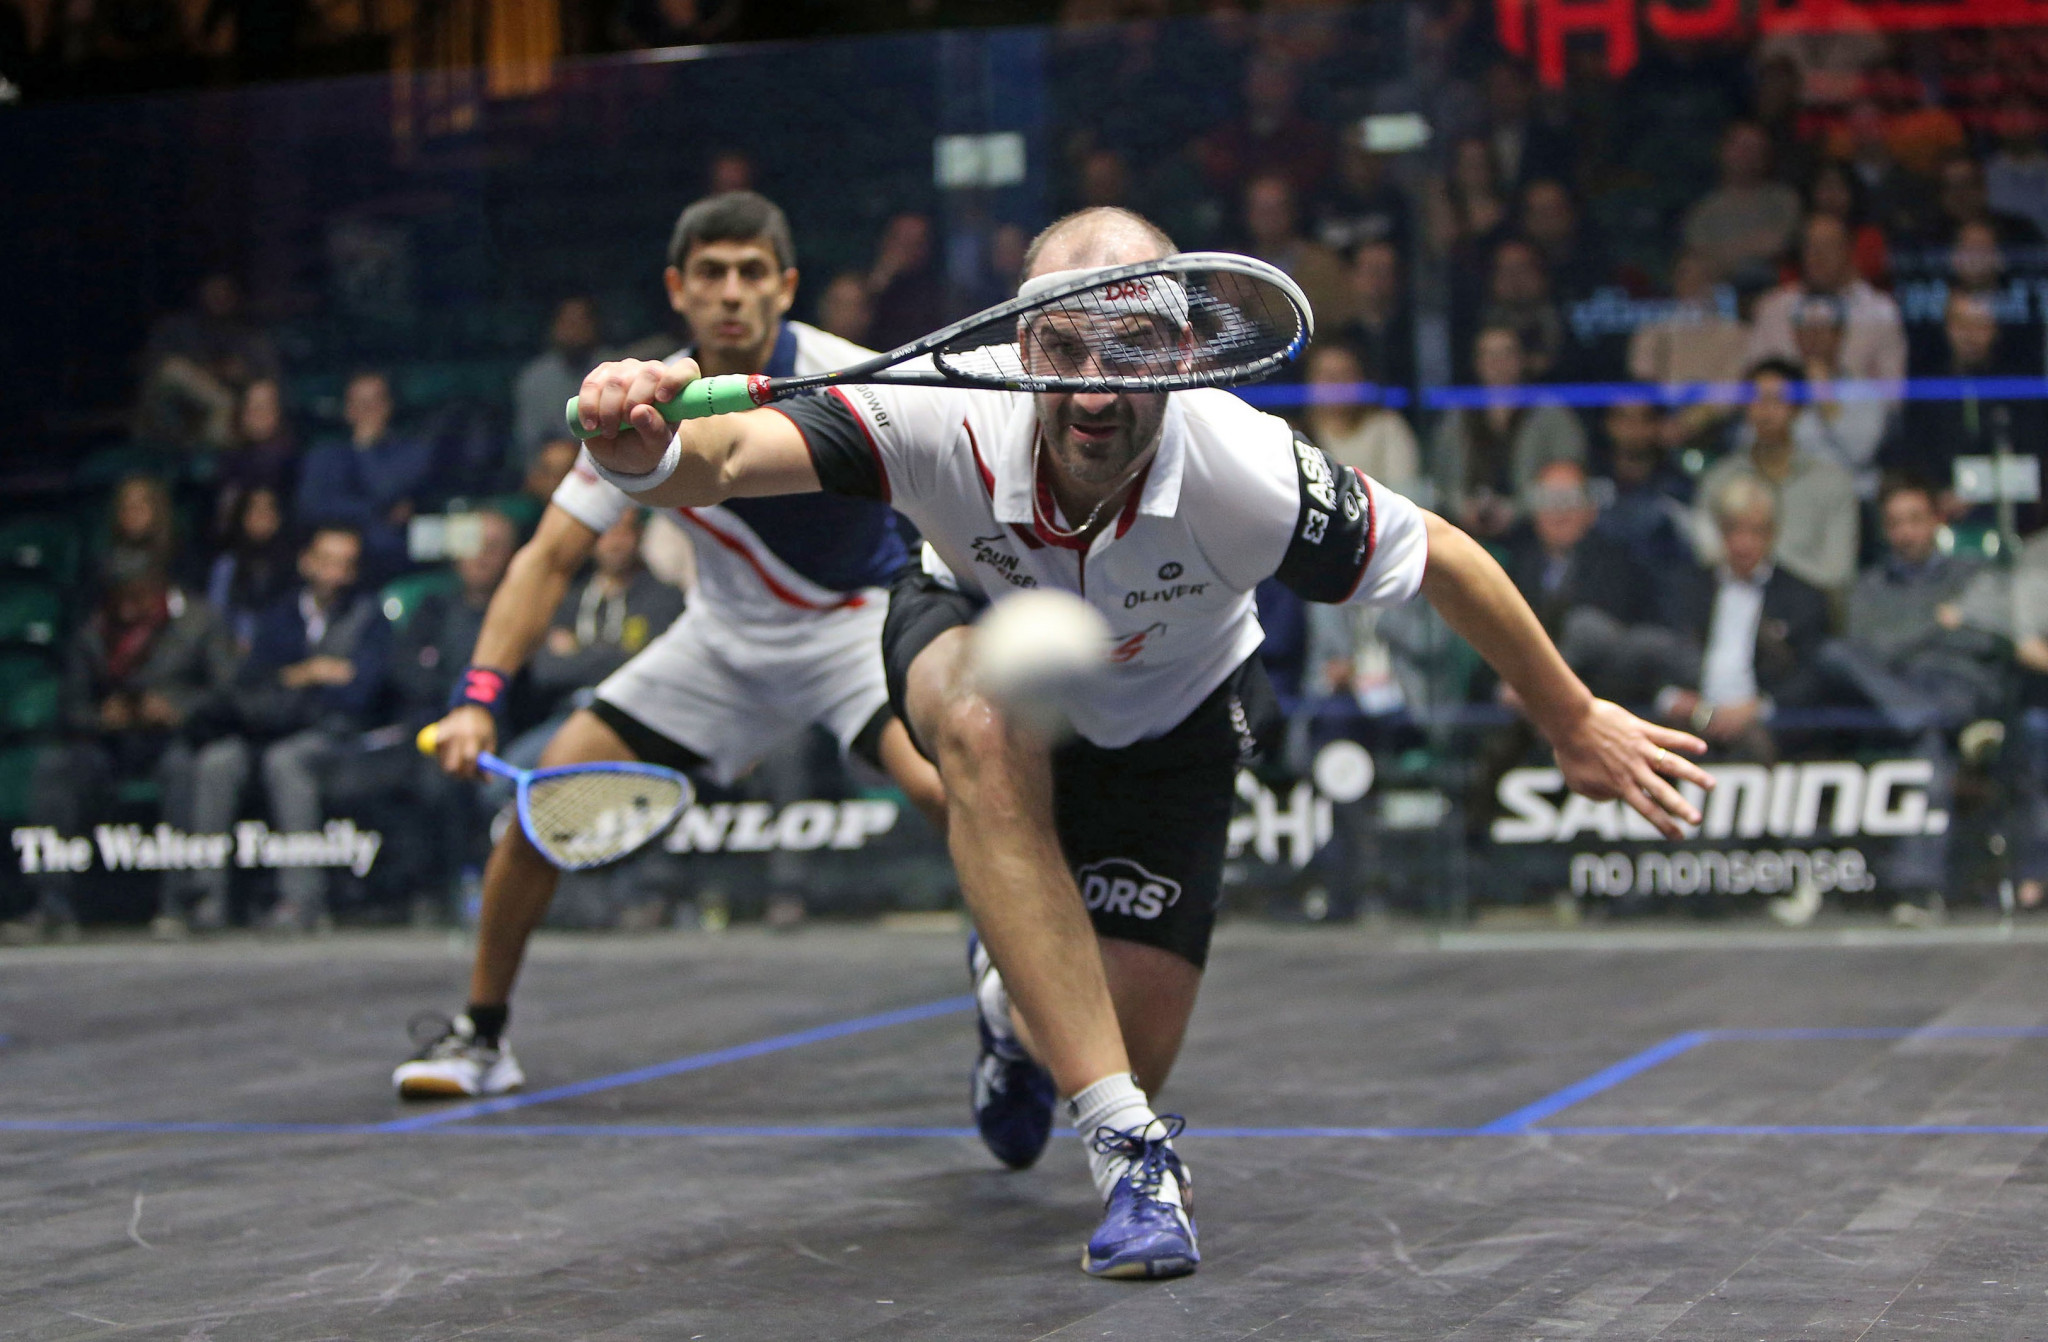 Germany's Simon Rösner progressed to the semi-finals of the PSA World Championships for the first time in his career ©PSA